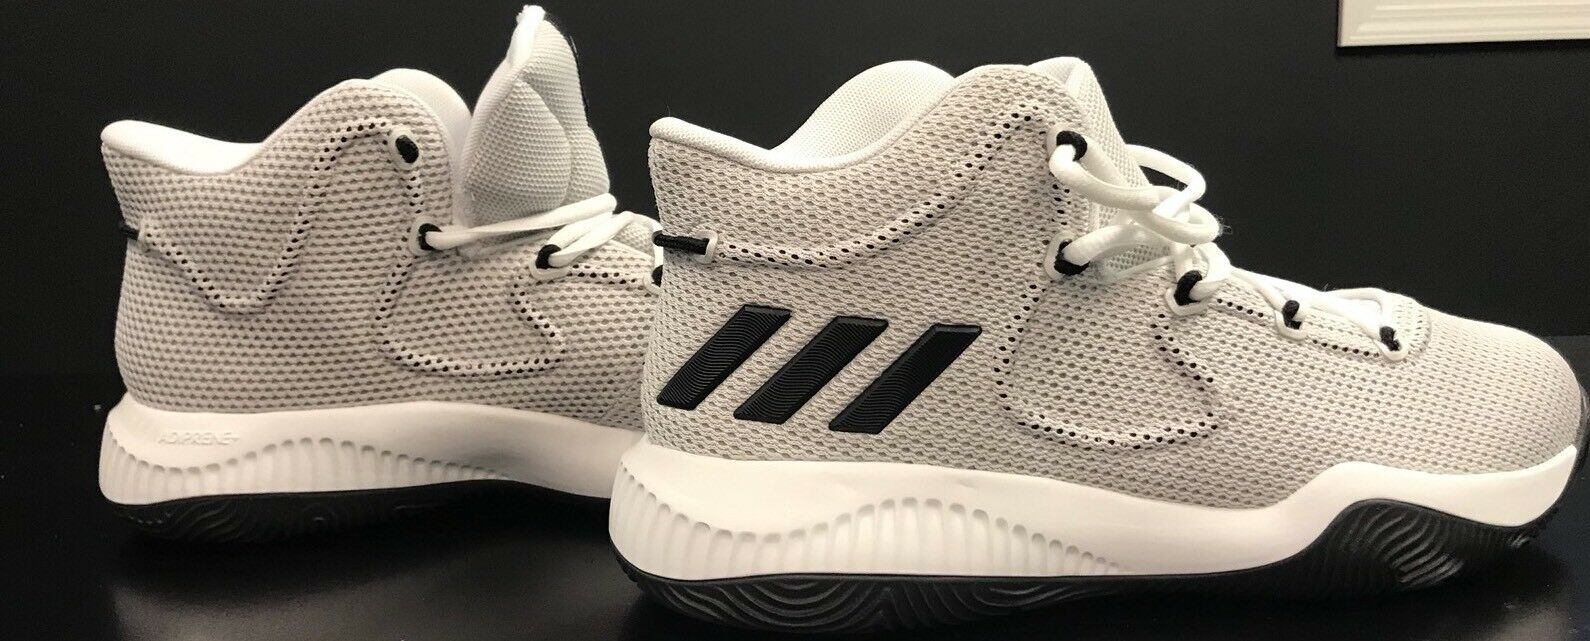 ADIDAS CRAZY EXPLOSIVE TD Basketball Shoes Men Style BY4493, US size 9.5 Cheap and beautiful fashion